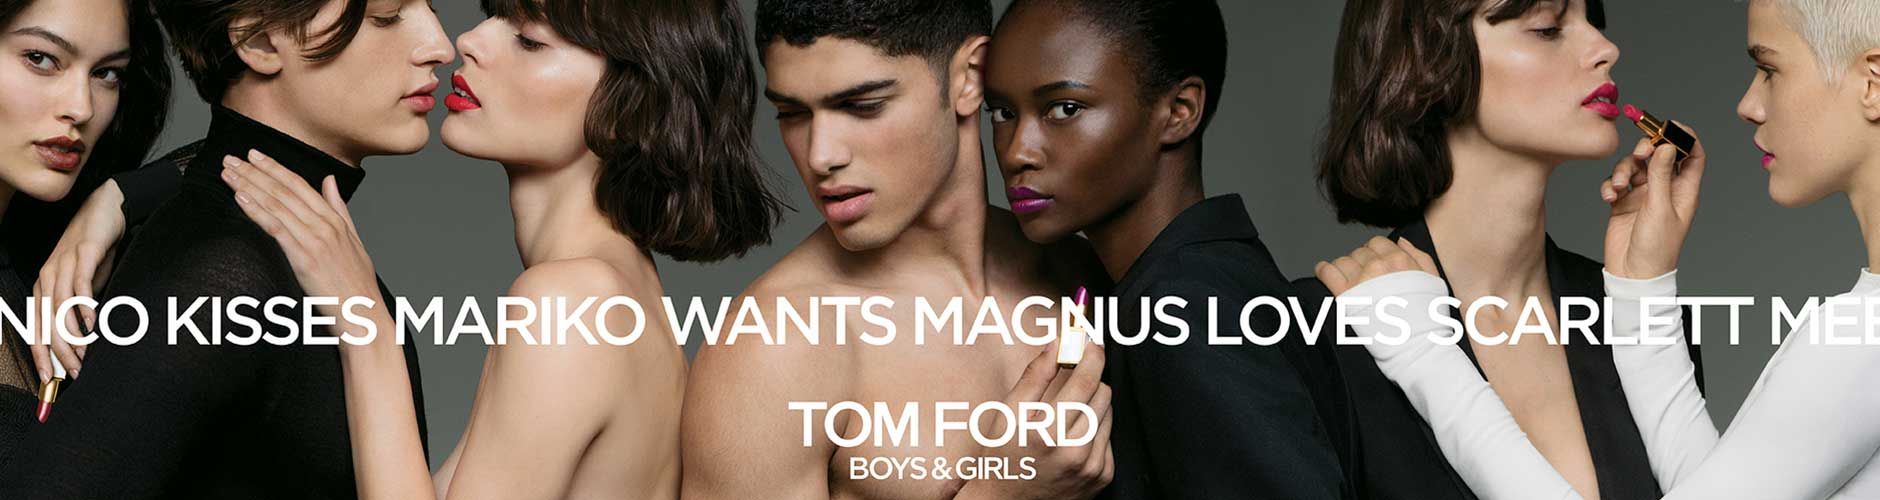 Tom Ford - Boys & Girls